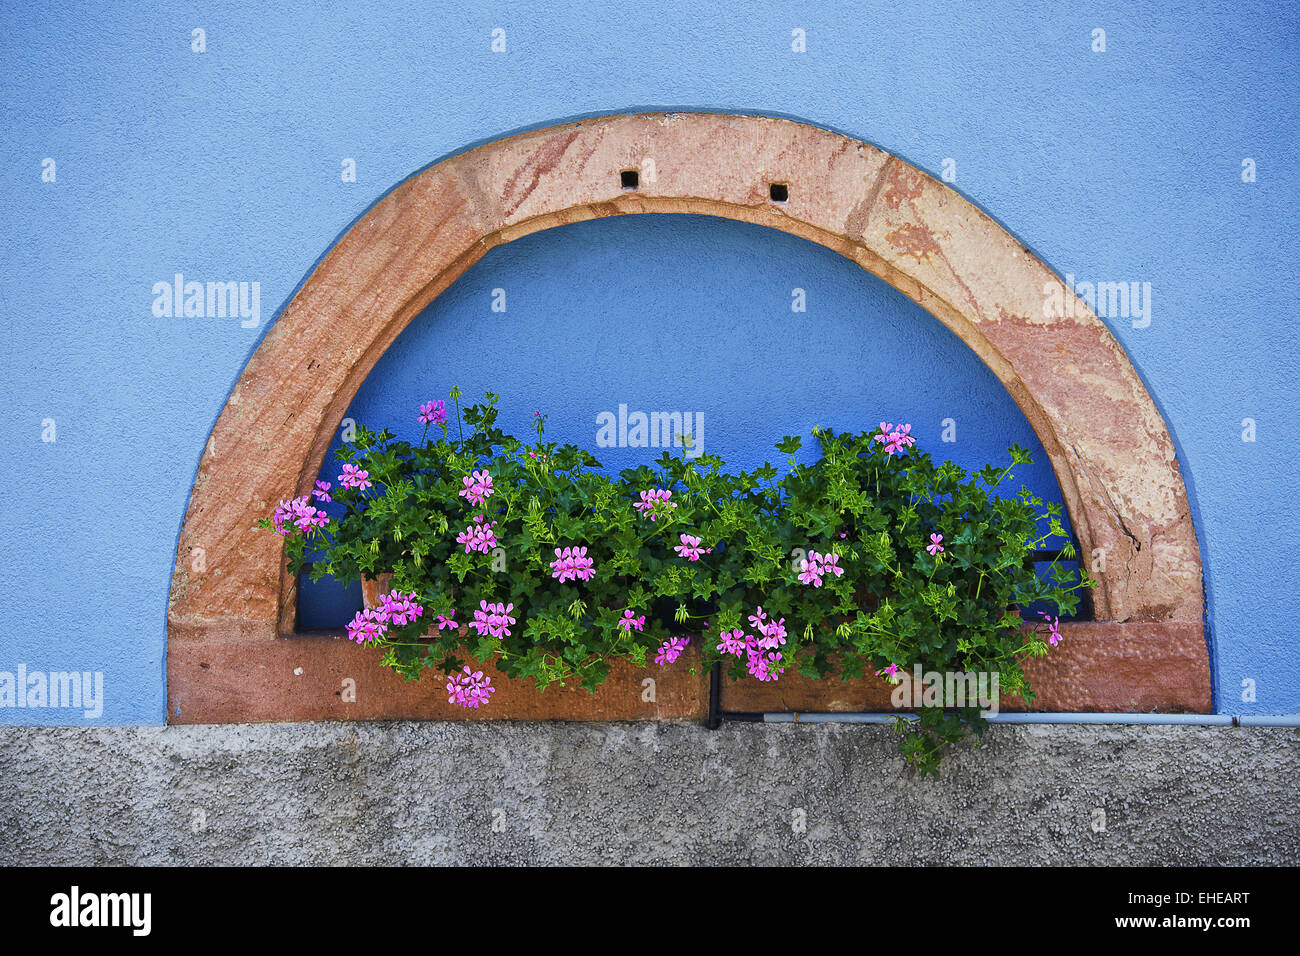 House wall in blossom, Blienschwiller, France Stock Photo